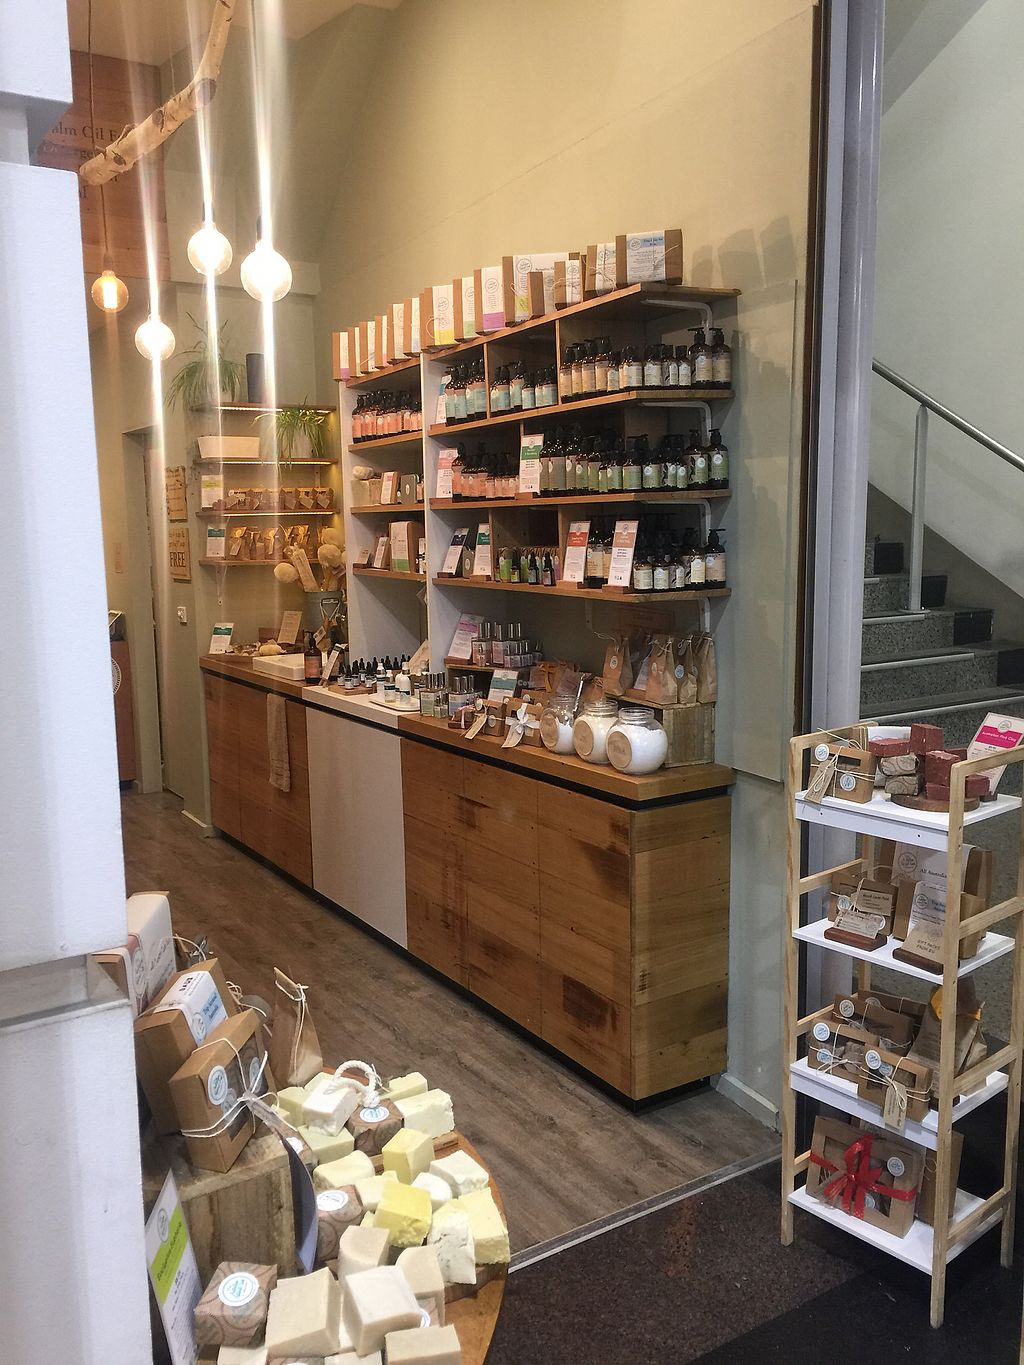 """Photo of Australian Natural Soap Company  by <a href=""""/members/profile/Tiggy"""">Tiggy</a> <br/>Shop display <br/> February 25, 2018  - <a href='/contact/abuse/image/112995/363786'>Report</a>"""